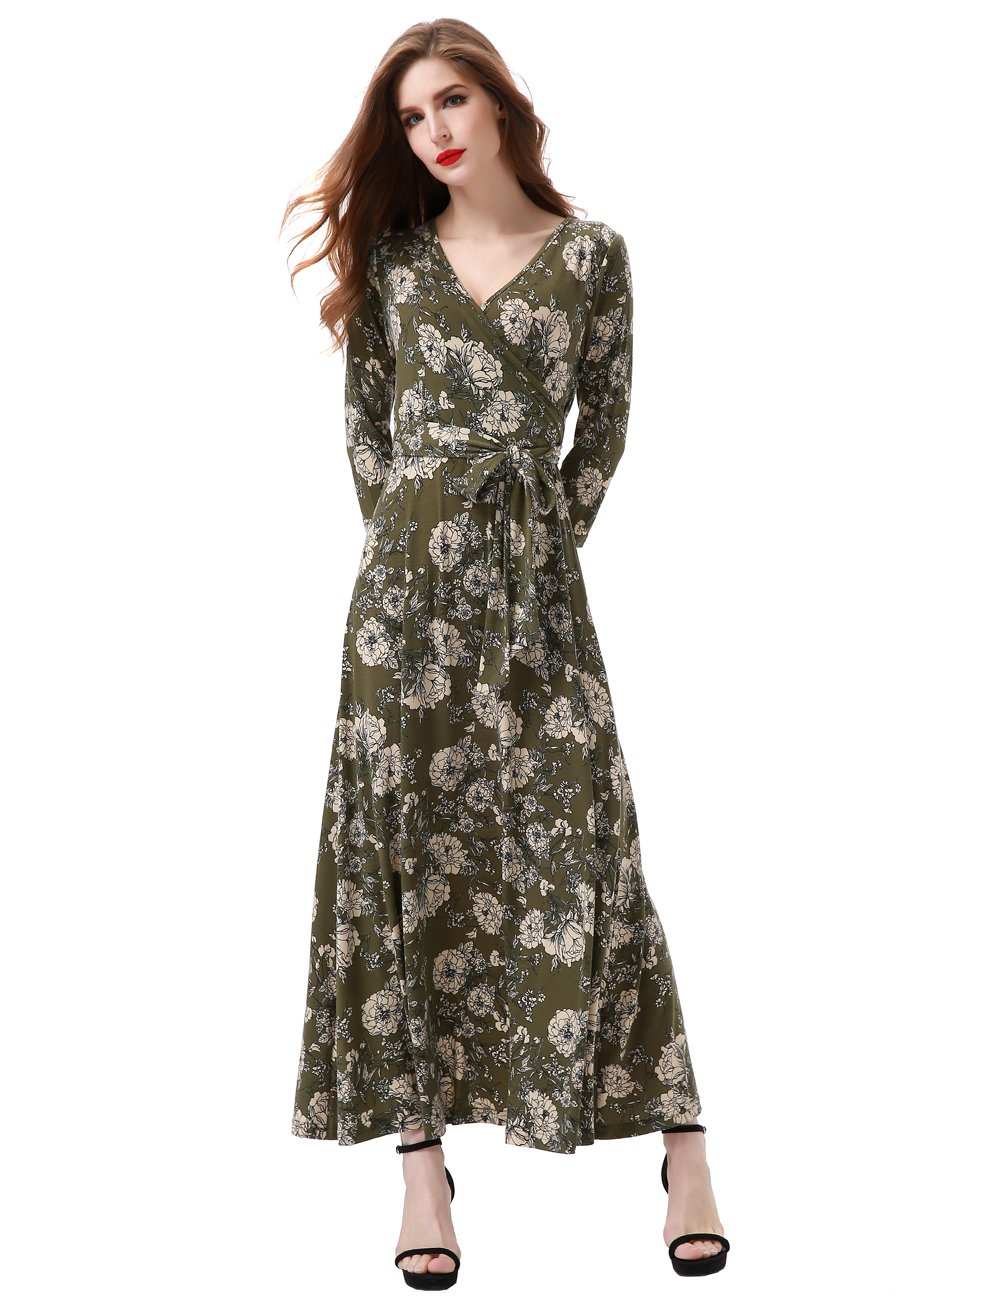 Aphratti Women's 3/4 Sleeve Vintage Wrap Long Maxi Dress with Belt X-Large Green